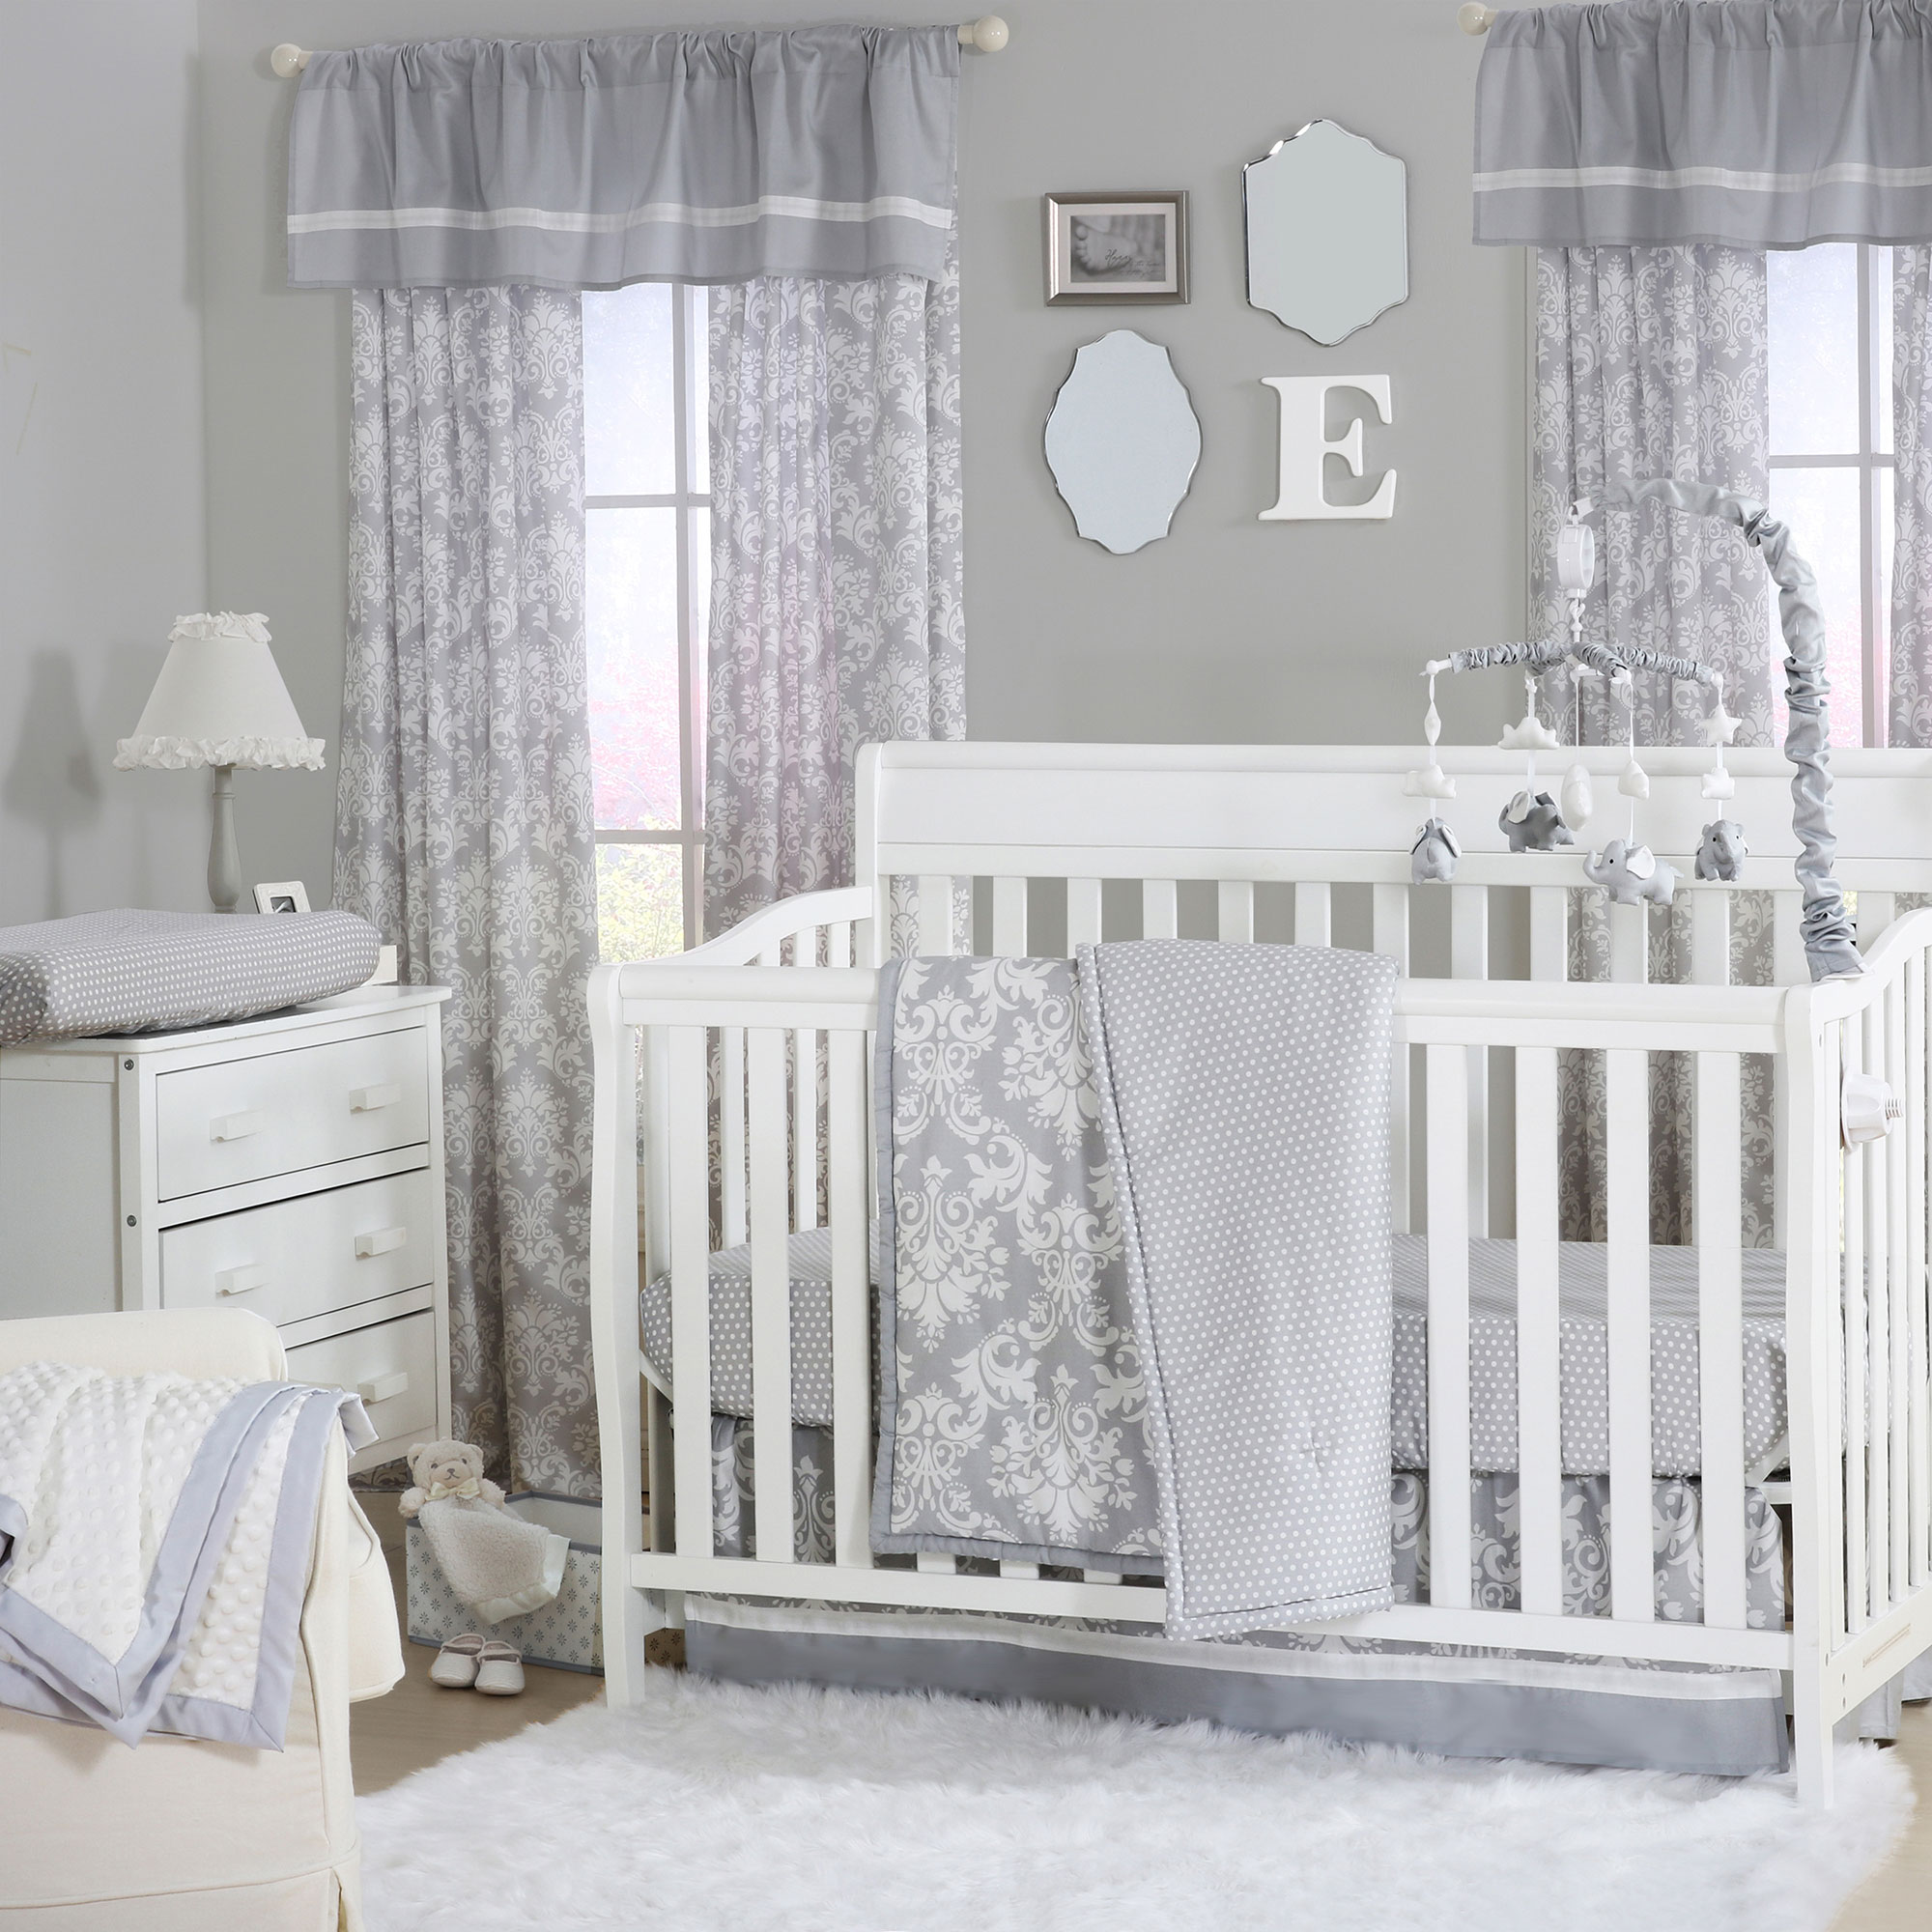 Grey Damask and Dot Print 4 Piece Baby Crib Bedding Set by The Peanut Shell